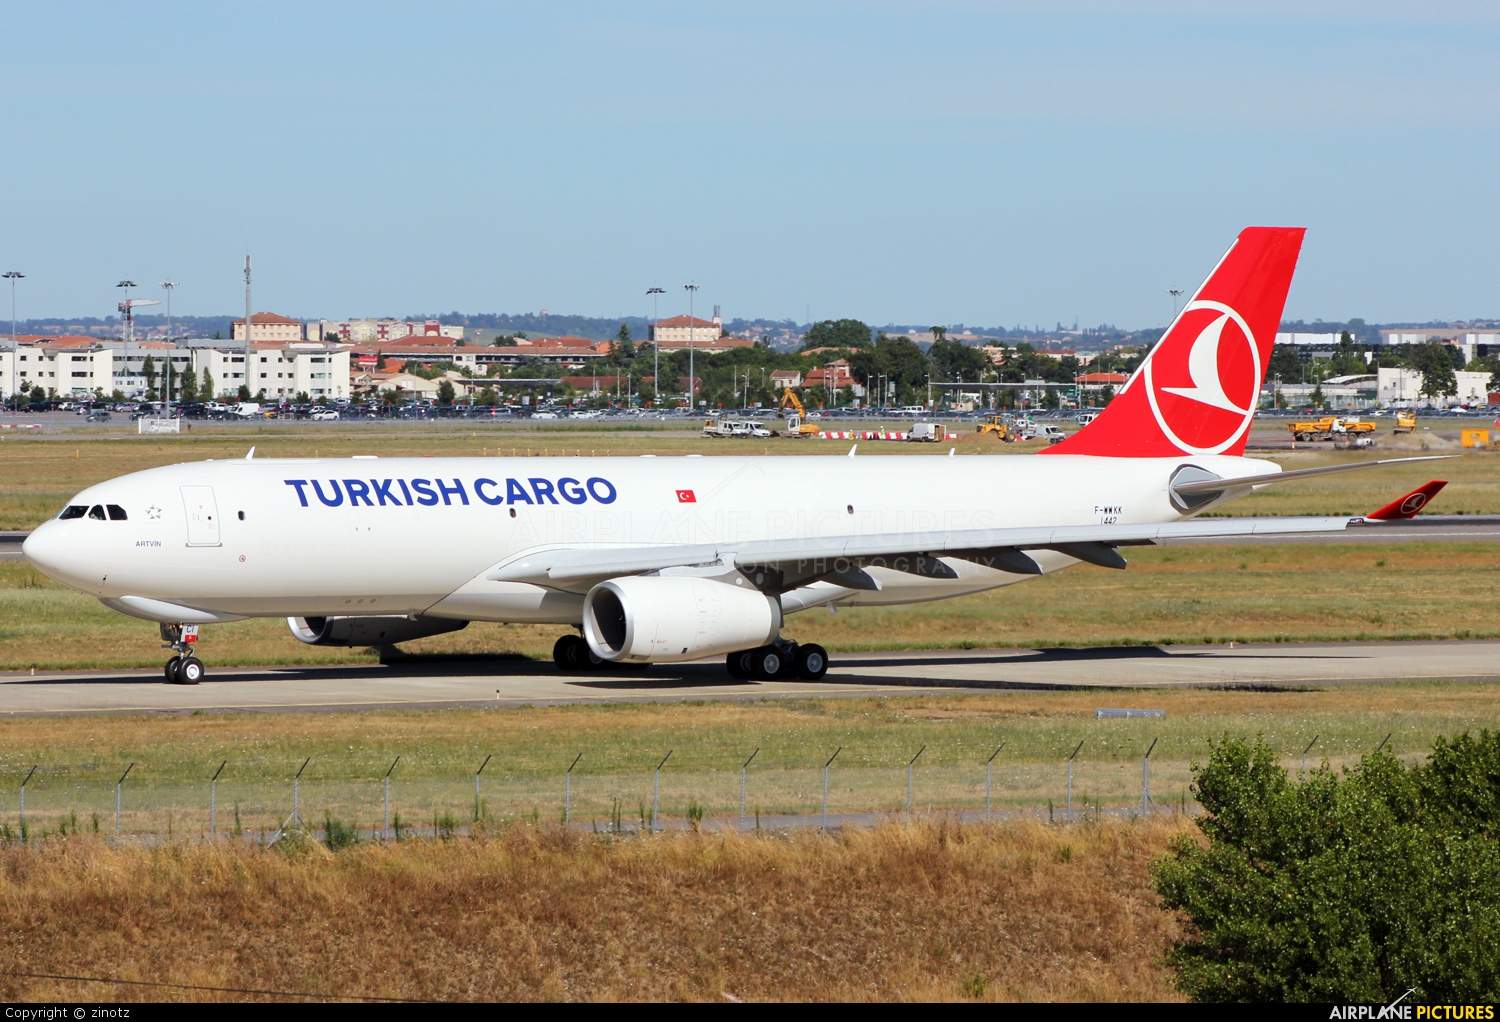 Turkish Cargo F-WWKK aircraft at Toulouse - Blagnac